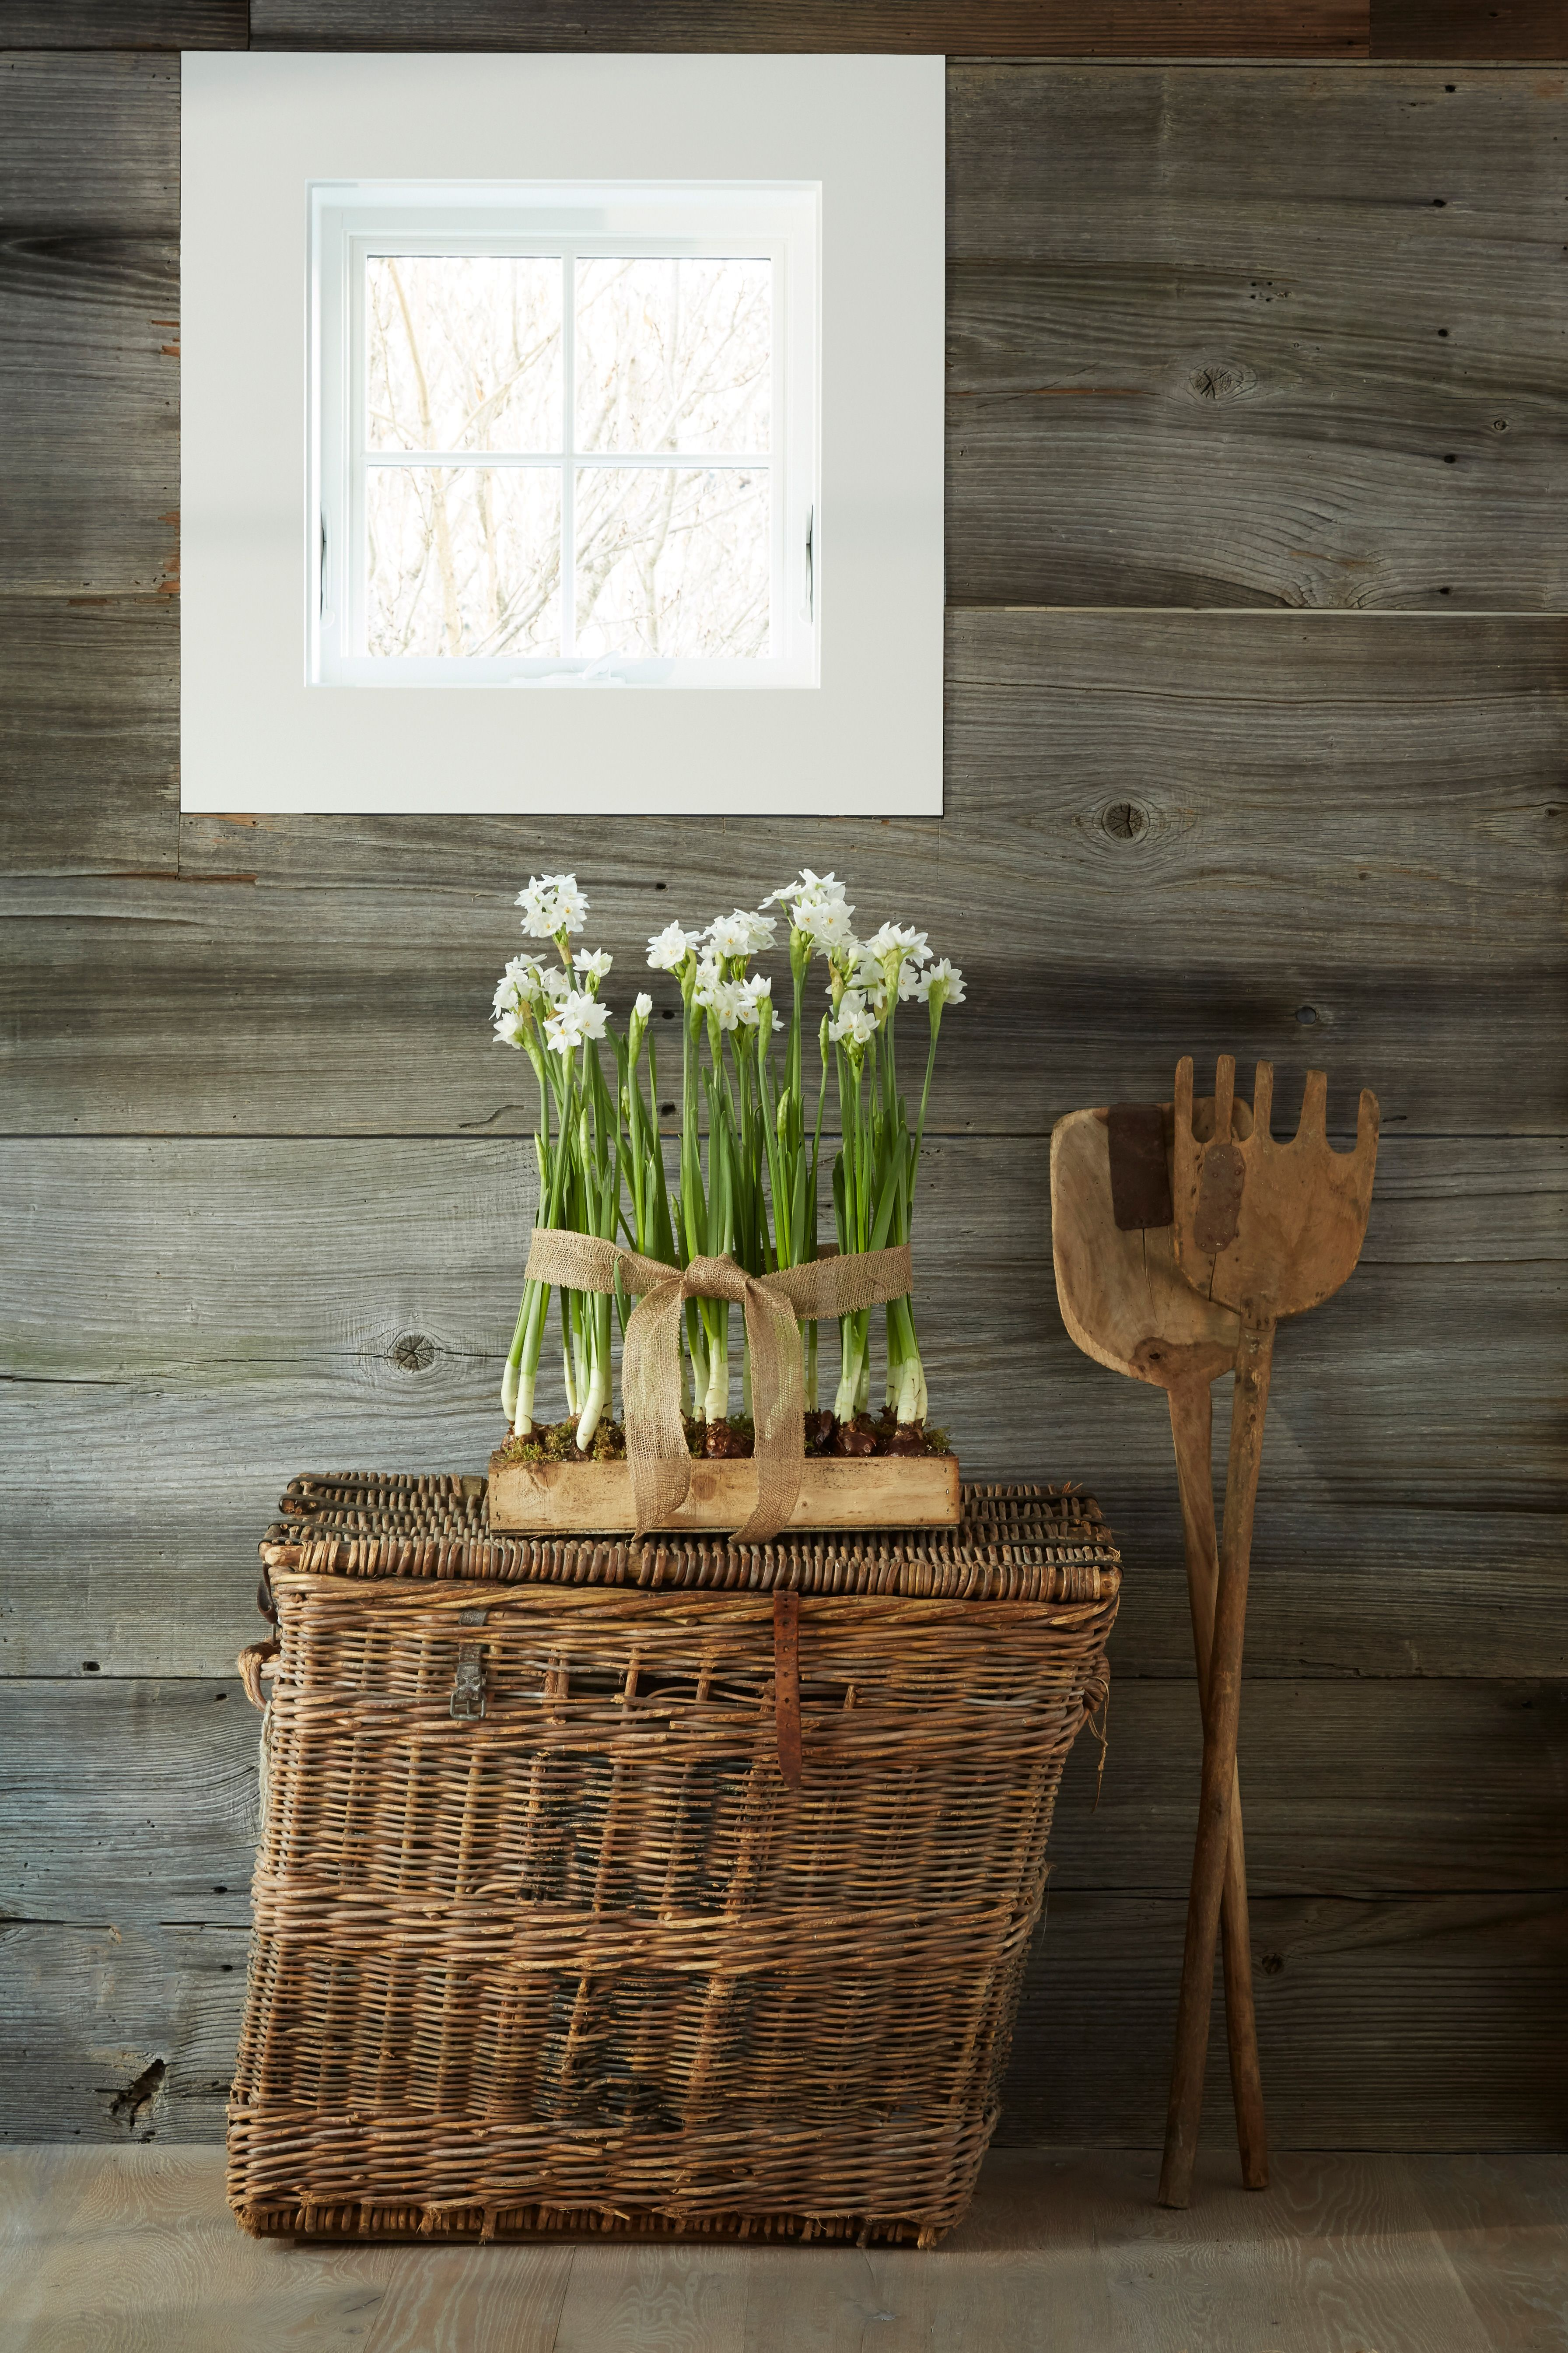 Step Inside GrayBarns on the Silvermine River. Basket